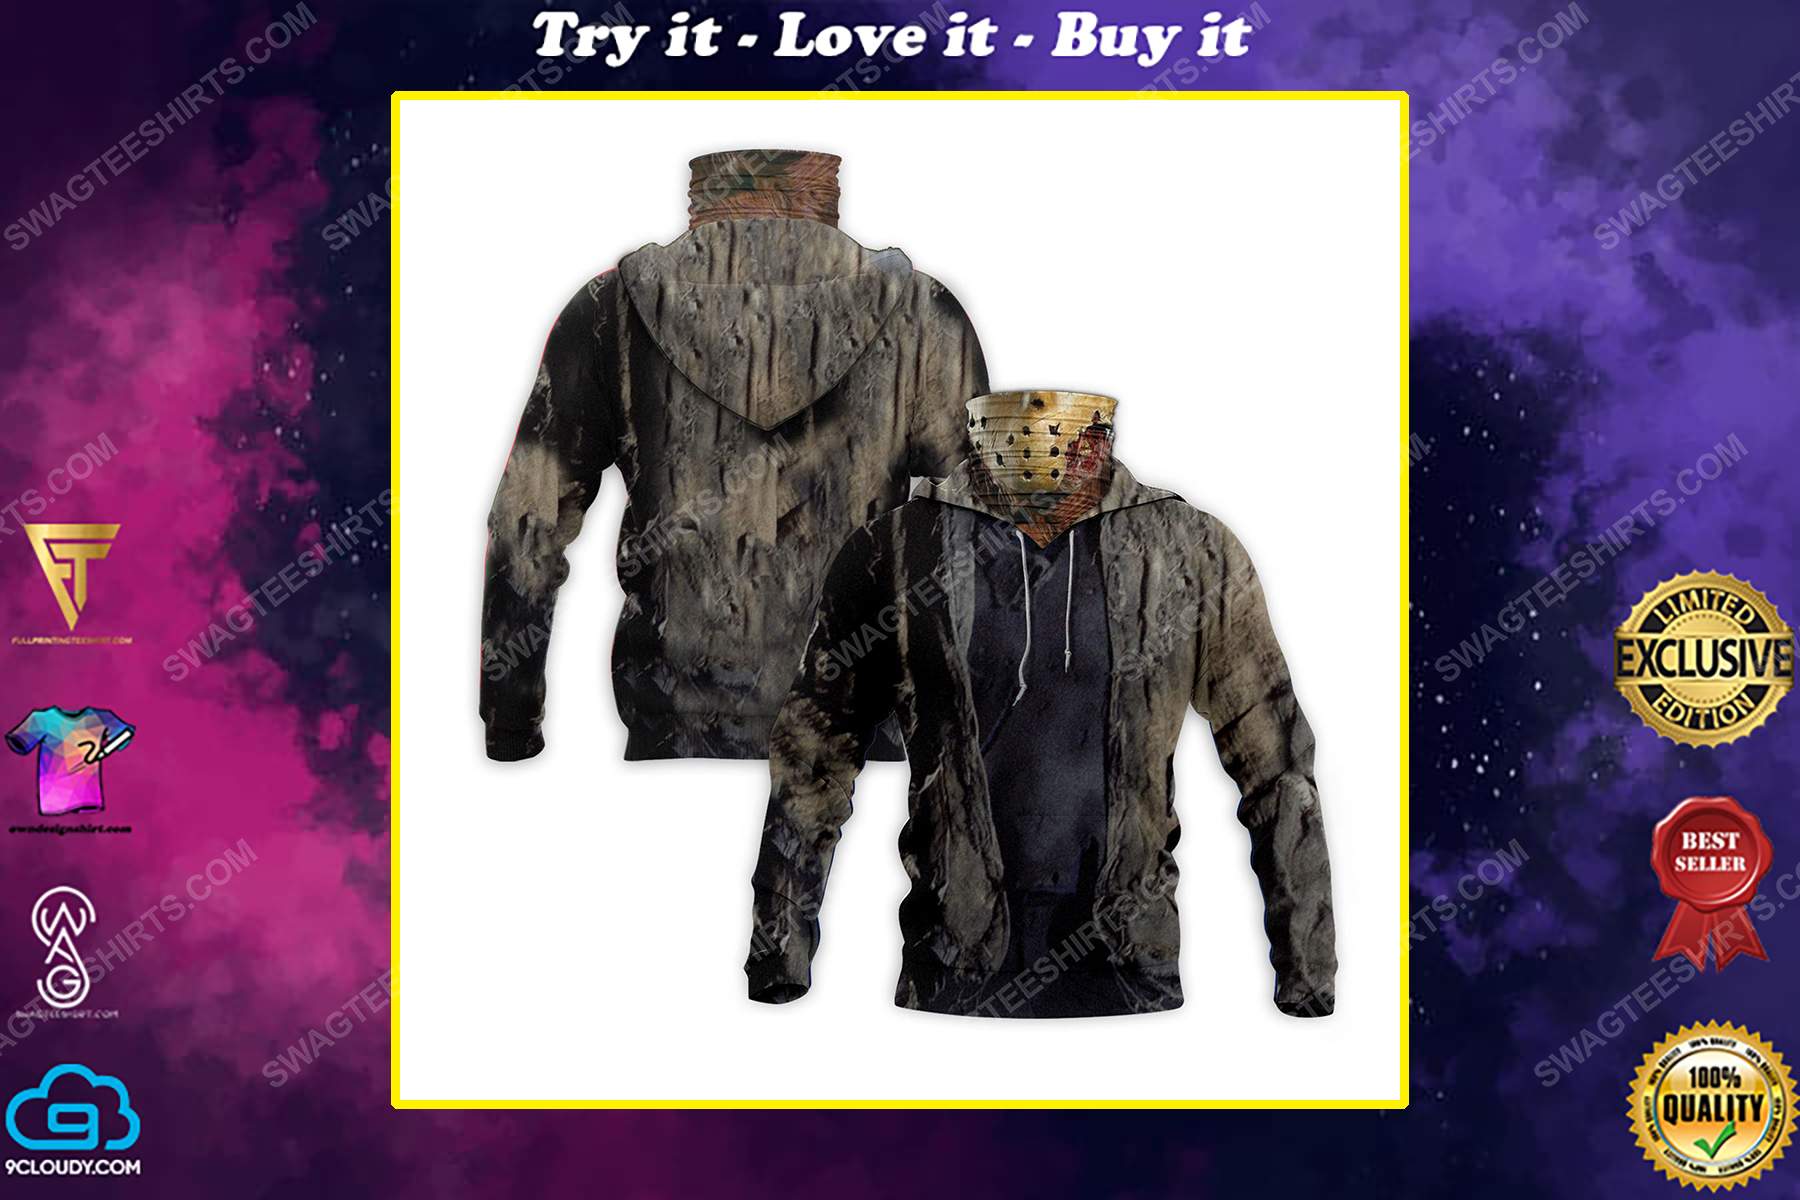 Friday the 13th jason voorhees for halloween full print mask hoodie